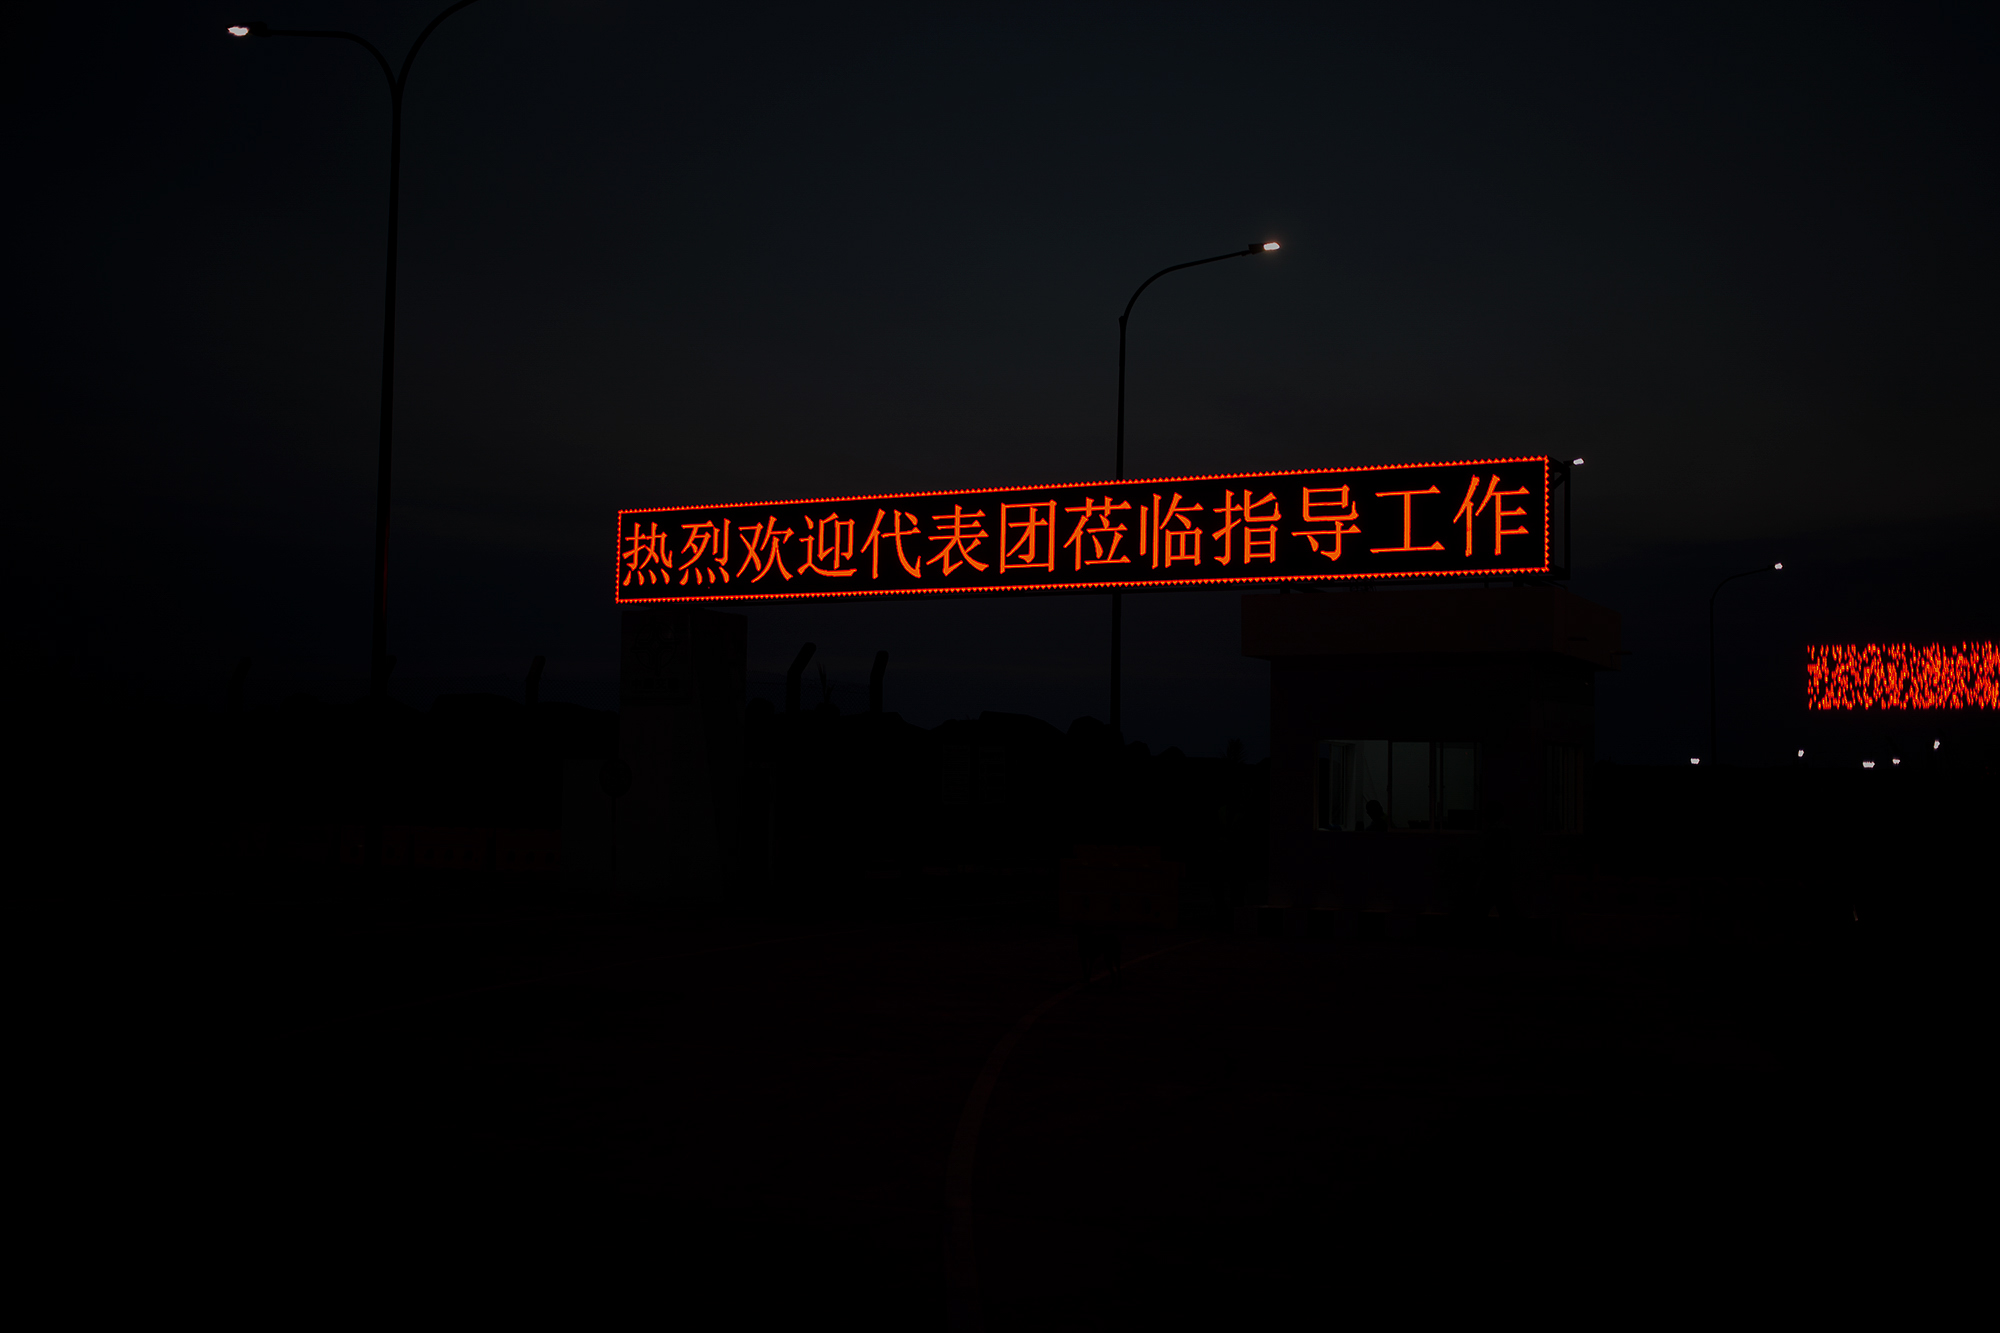 A welcome message in Chinese displays on the entry gate of a construction site run by China Harbour Engineering Company, in Colombo, Sri Lanka's largest port city, 2017.